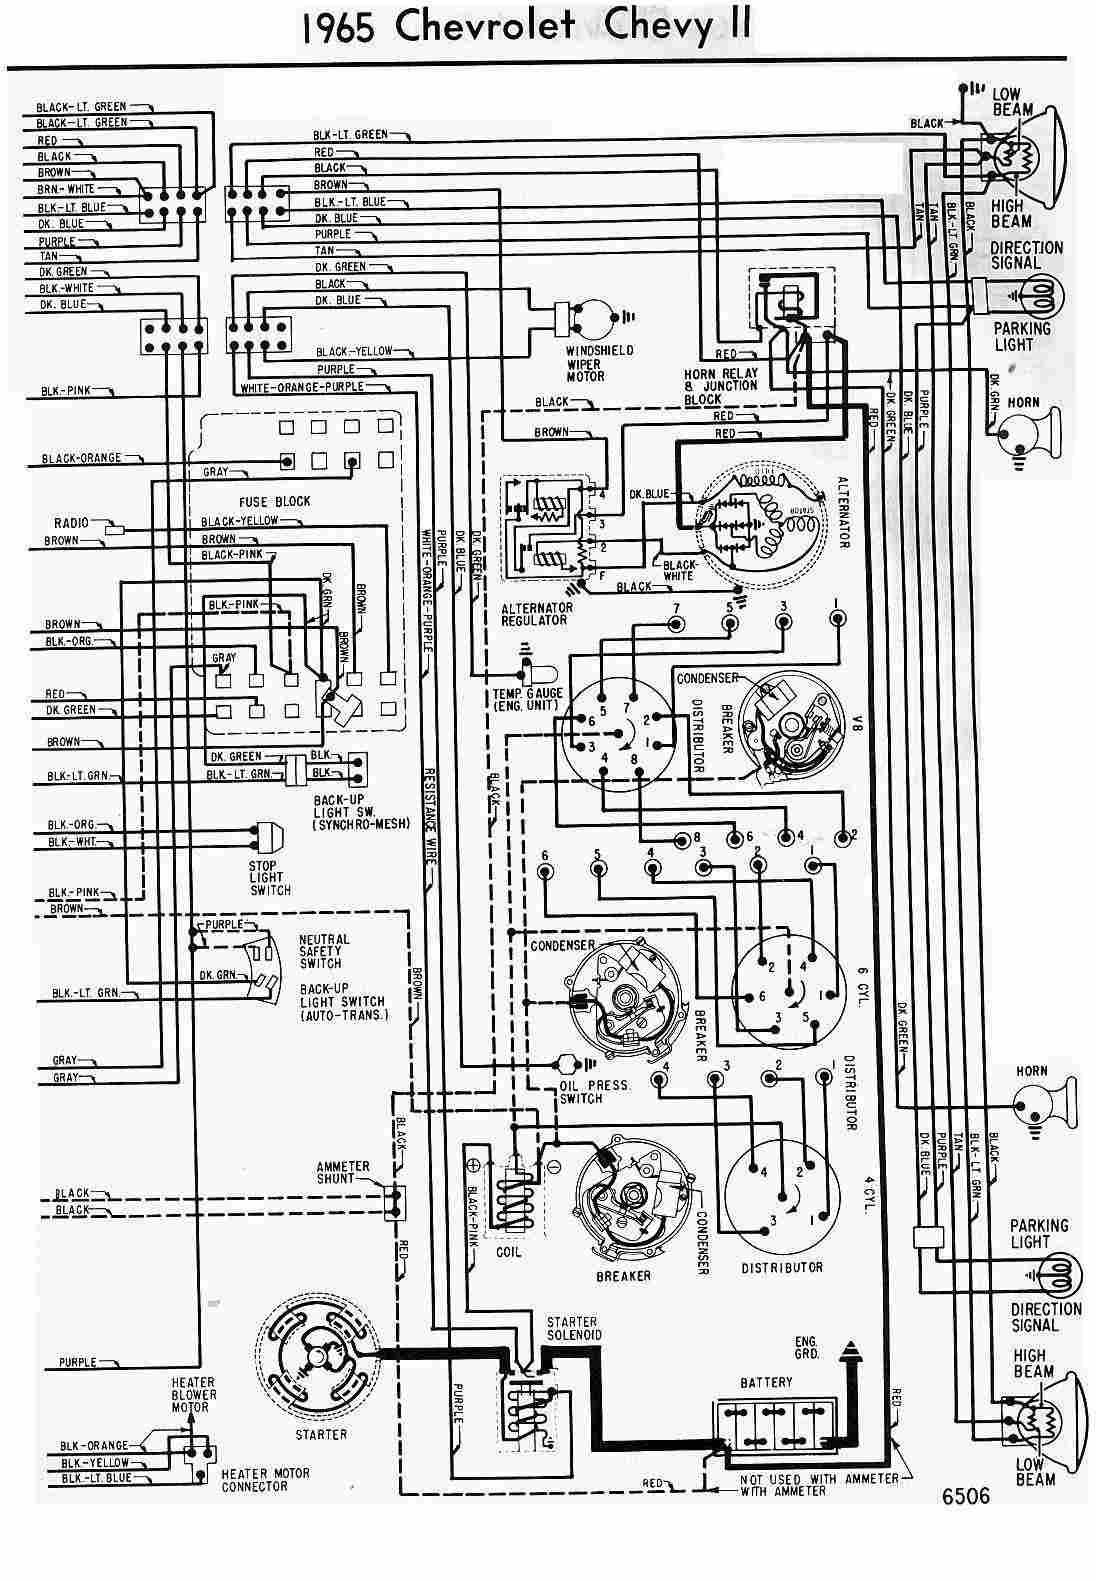 1965 Chevy Impala Wiring Diagram Free Download - And Wiring Diagram  state-friend - state-friend.ristorantebotticella.it | 2005 Impala Engine Wiring Harness Diagram |  | state-friend.ristorantebotticella.it